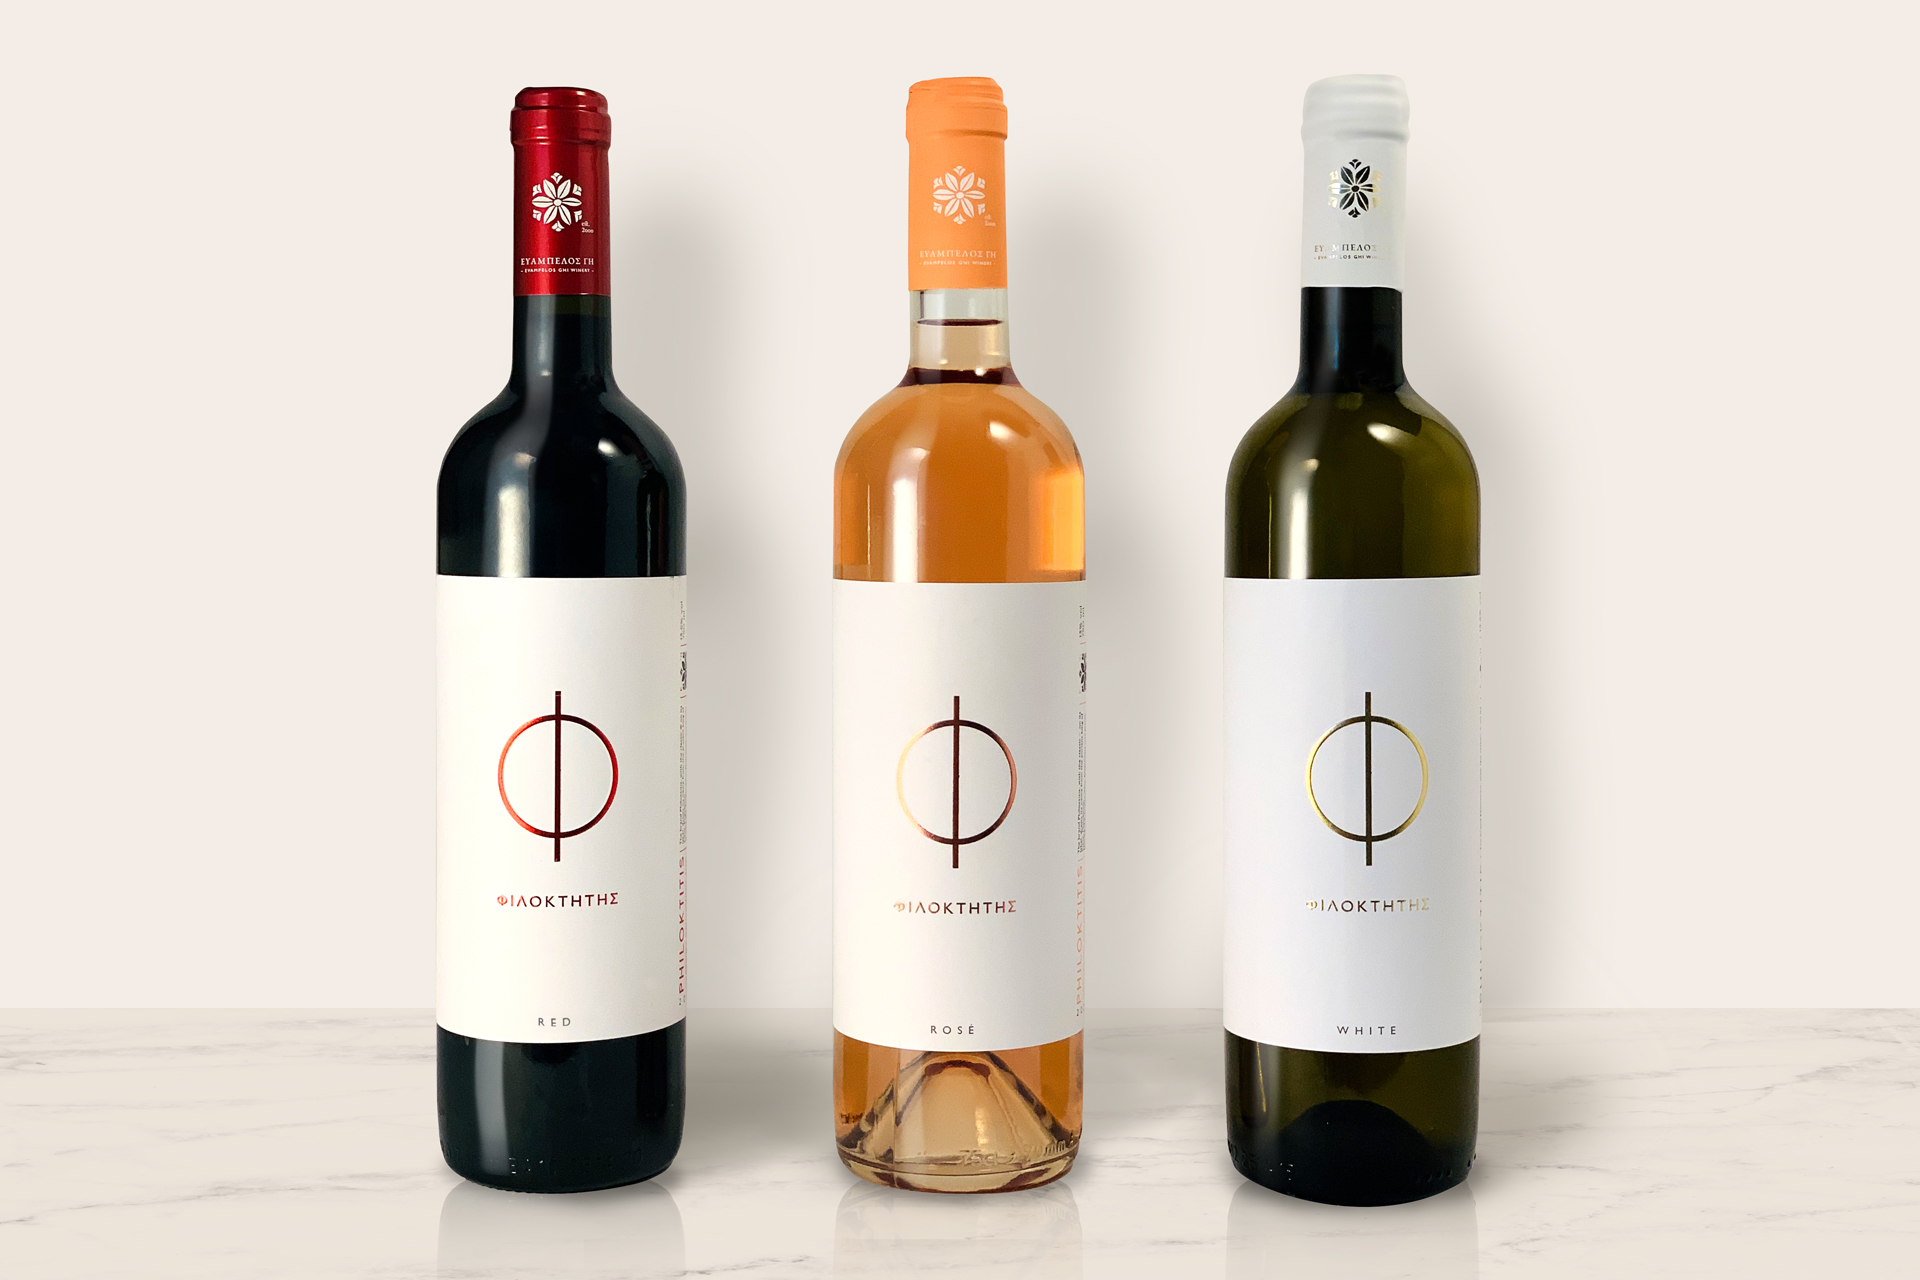 Evampelos Ghi Winery Philoctetes Wine Labels Rebranding